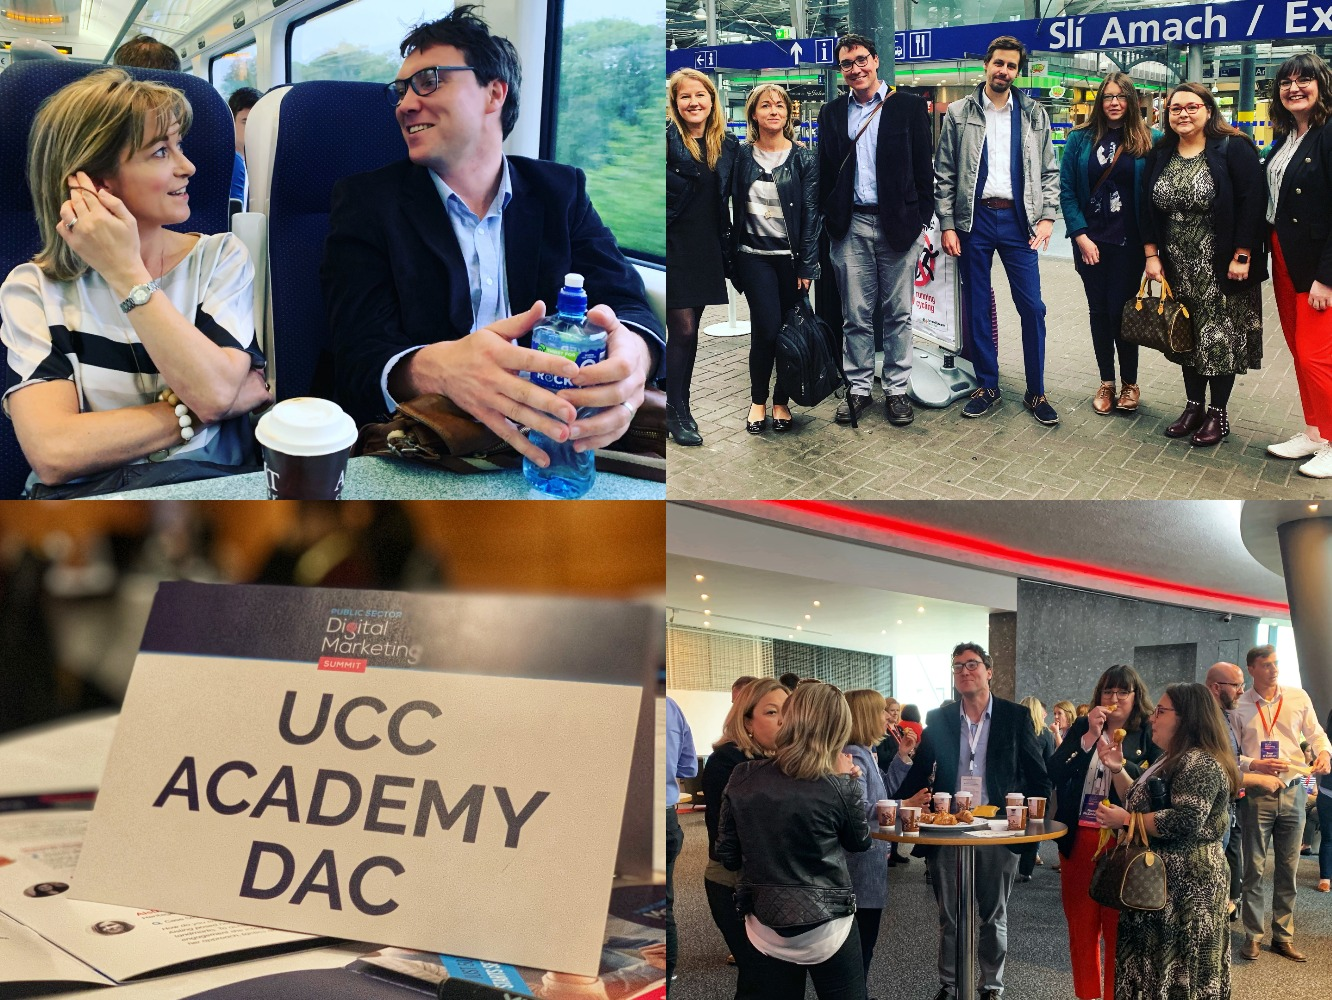 UCC Academy attended a conference on digital marketing for the public sector